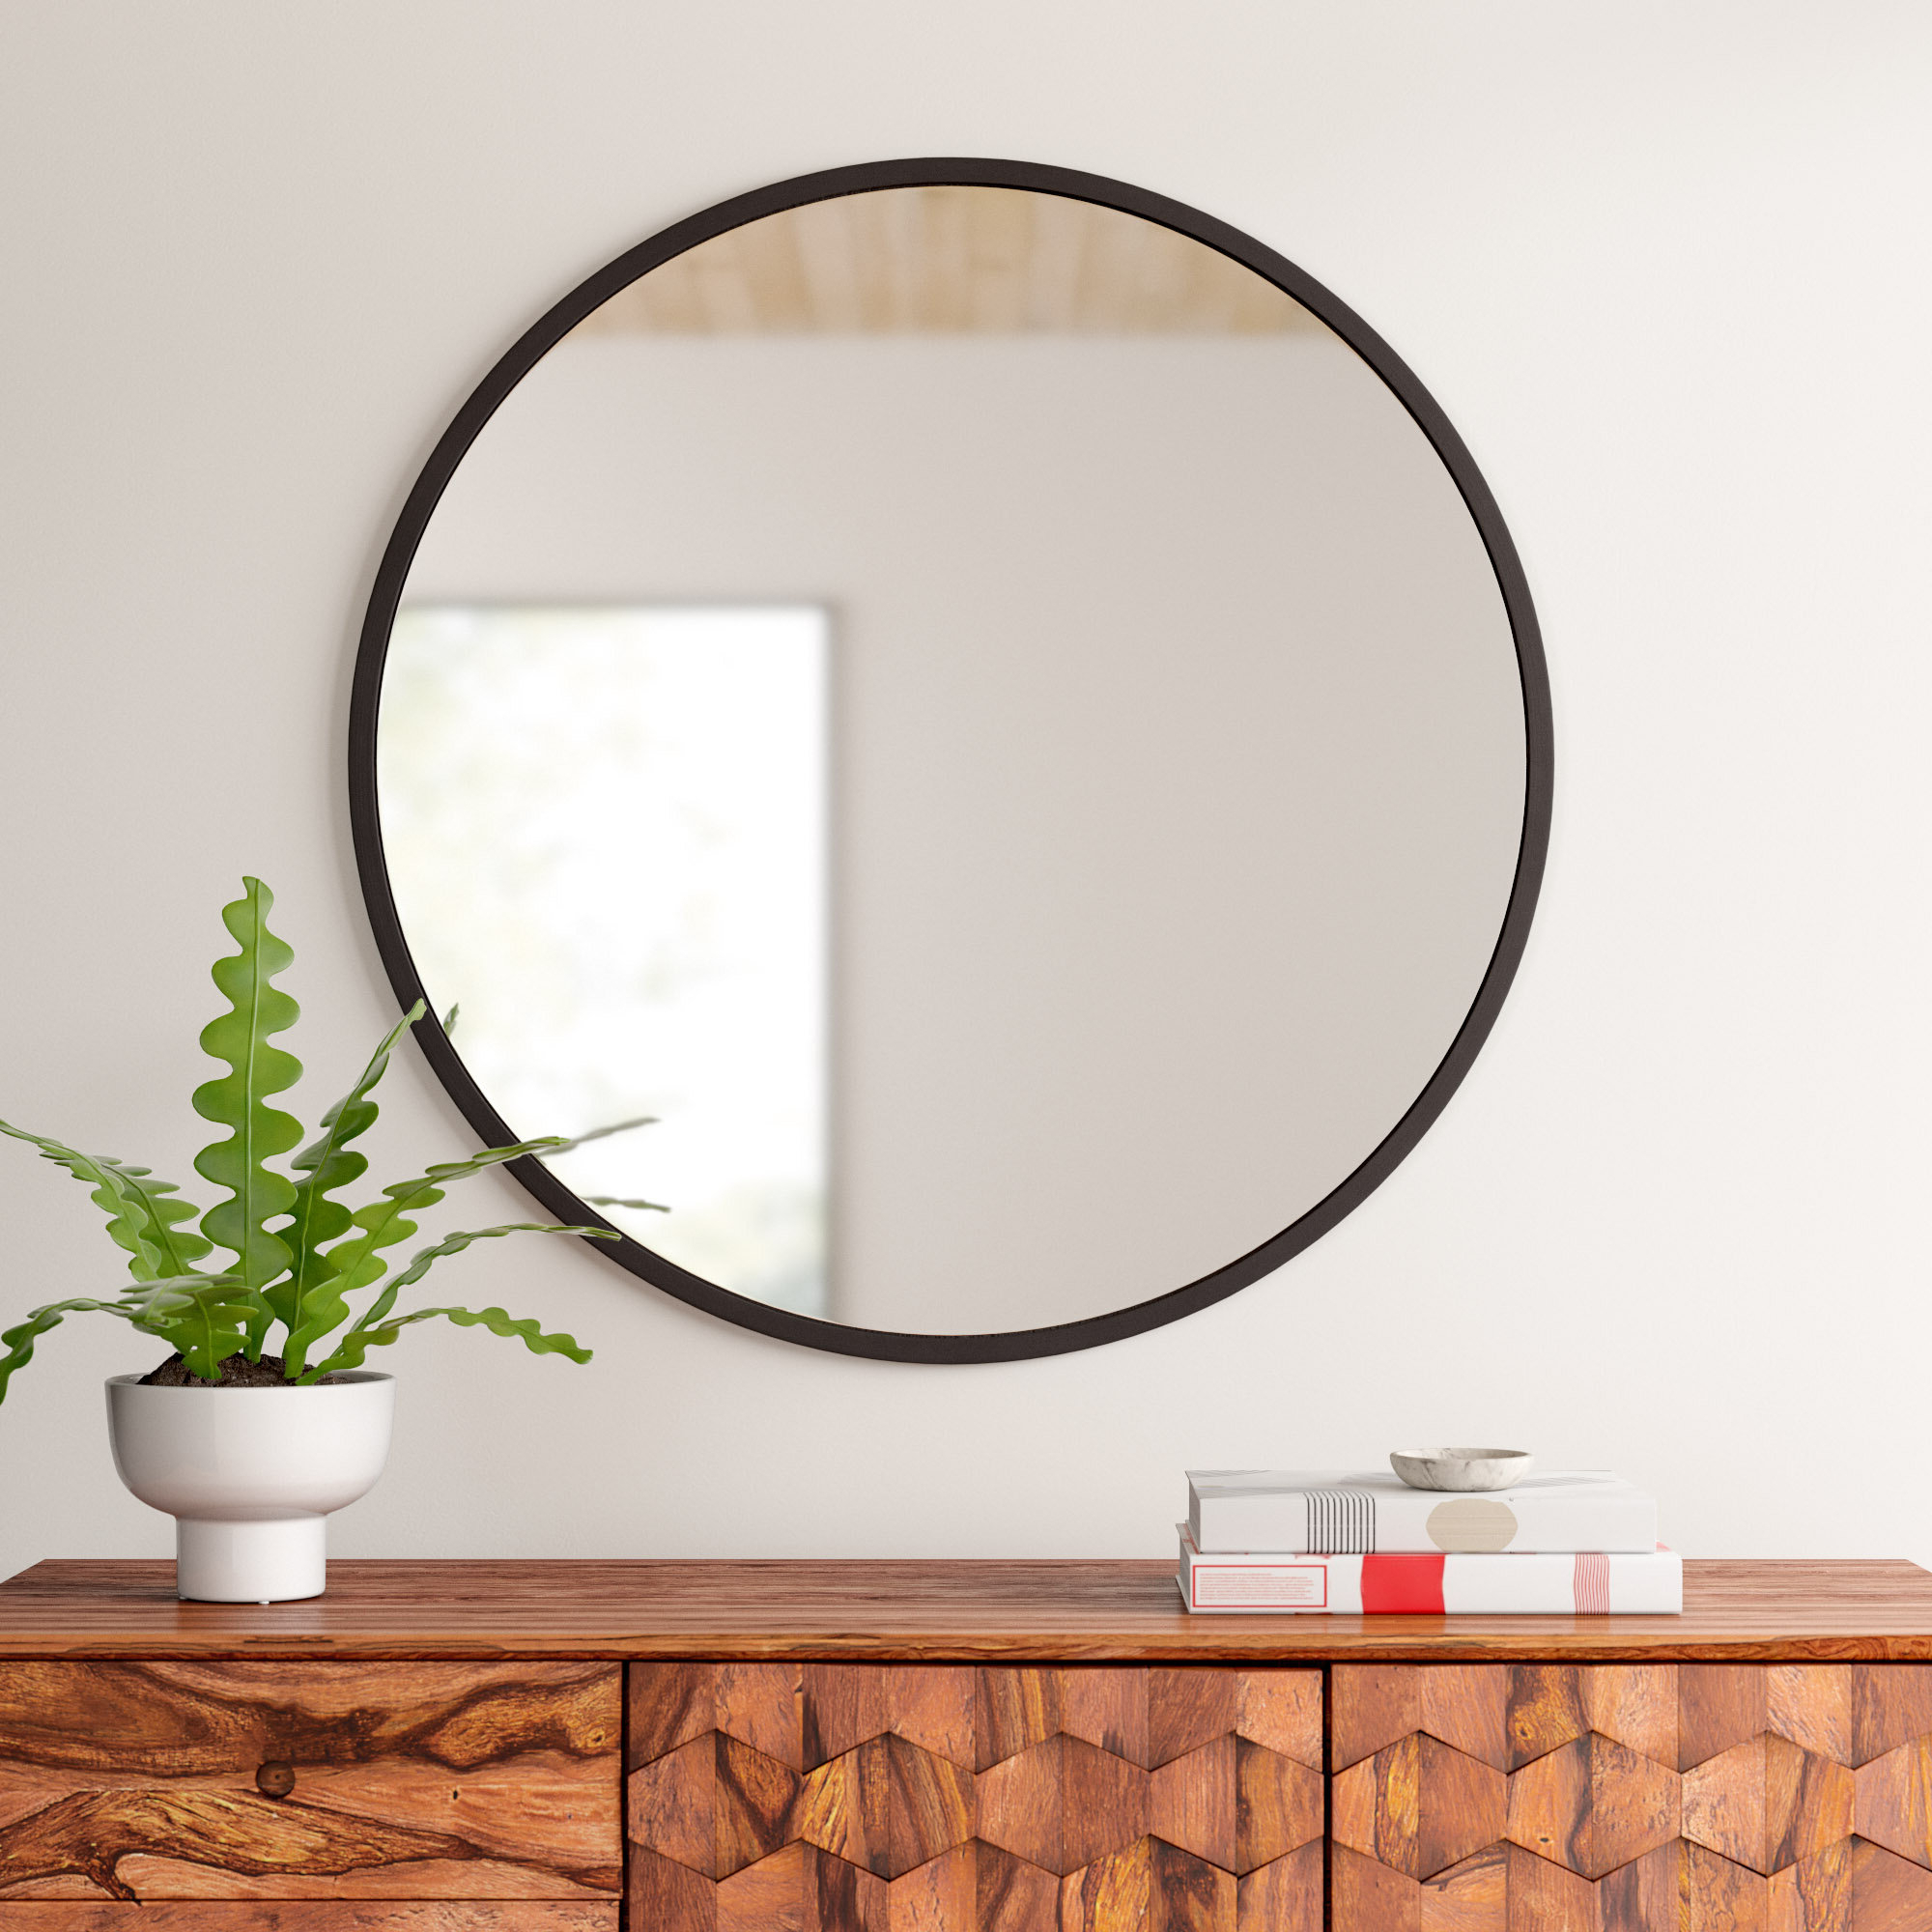 Umbra Hub Modern And Contemporary Accent Mirror Intended For Widely Used Hub Modern And Contemporary Accent Mirrors (View 14 of 20)